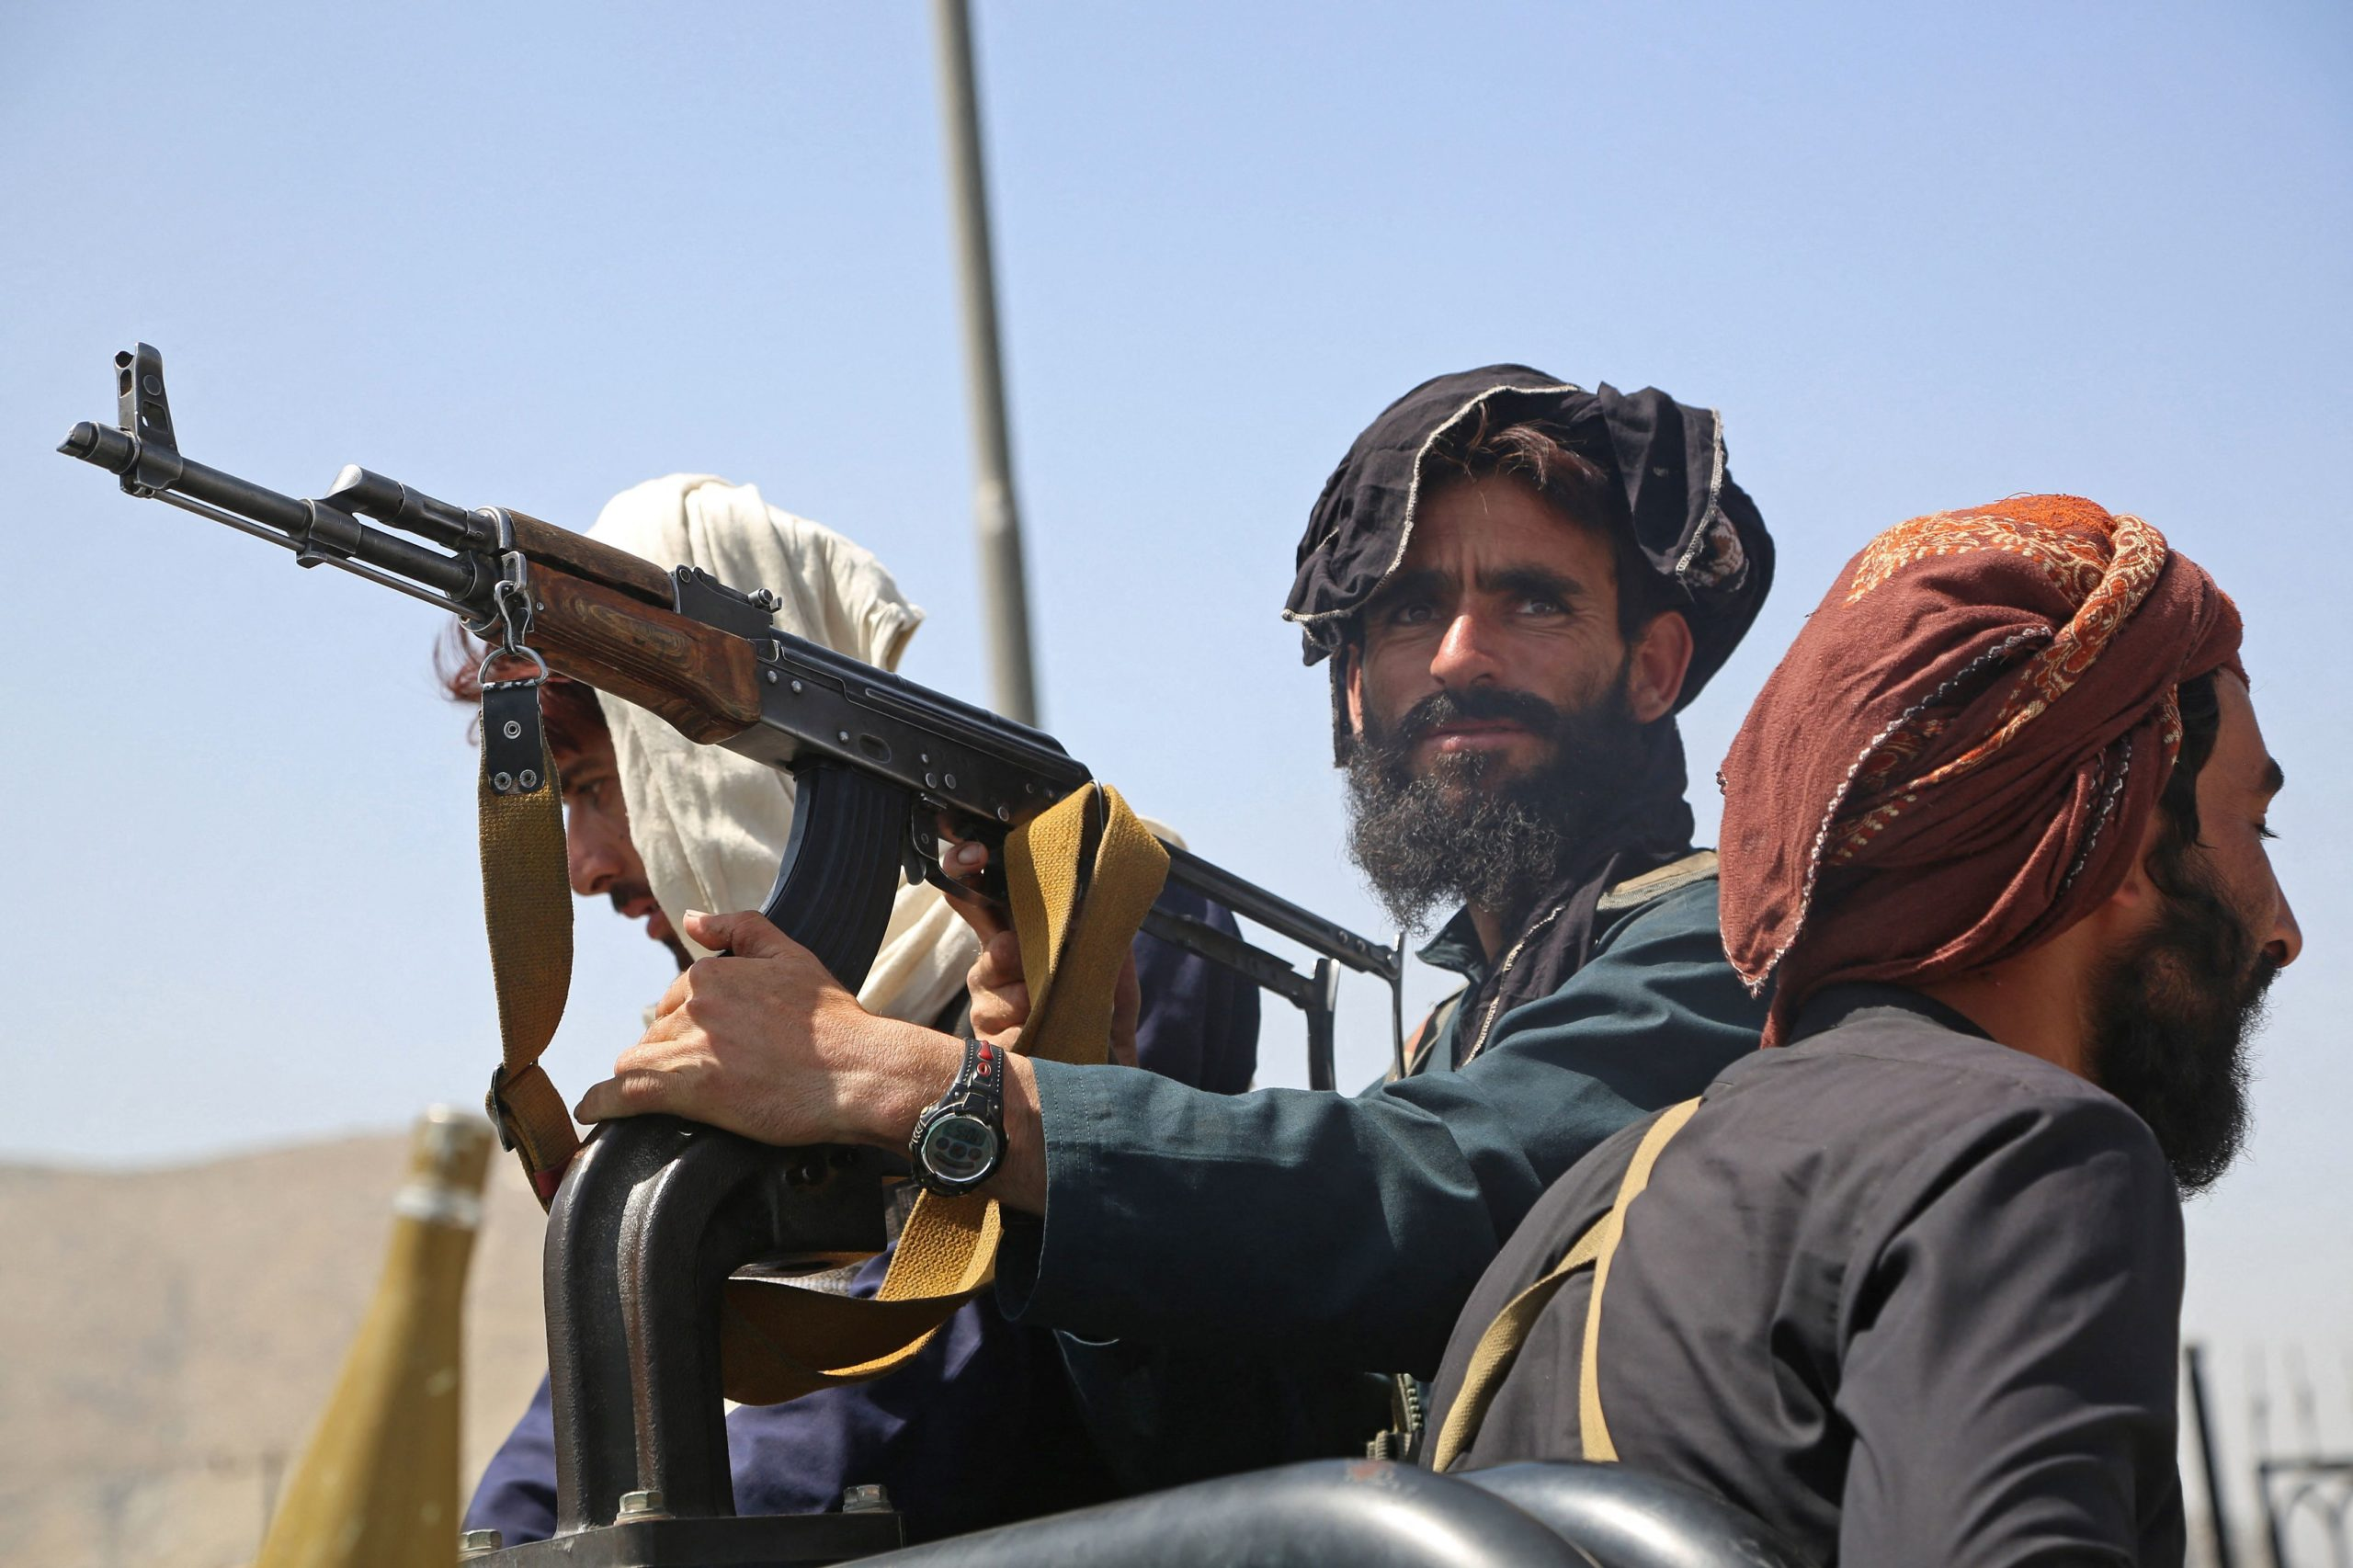 TOPSHOT - Taliban fighters stand guard in a vehicle along the roadside in Kabul on August 16, 2021, after a stunningly swift end to Afghanistan's 20-year war, as thousands of people mobbed the city's airport trying to flee the group's feared hardline brand of Islamist rule. (Photo by - / AFP) / The erroneous mention[s] appearing in the metadata of this photo by Zakeria HASHIMI has been modified in AFP systems in the following manner: [-] instead of [Zakeria Hashimi]. Please immediately remove the erroneous mention[s] from all your online services and delete it (them) from your servers. If you have been authorized by AFP to distribute it (them) to third parties, please ensure that the same actions are carried out by them. Failure to promptly comply with these instructions will entail liability on your part for any continued or post notification usage. Therefore we thank you very much for all your attention and prompt action. We are sorry for the inconvenience this notification may cause and remain at your disposal for any further information you may require. (Photo by -/AFP via Getty Images)